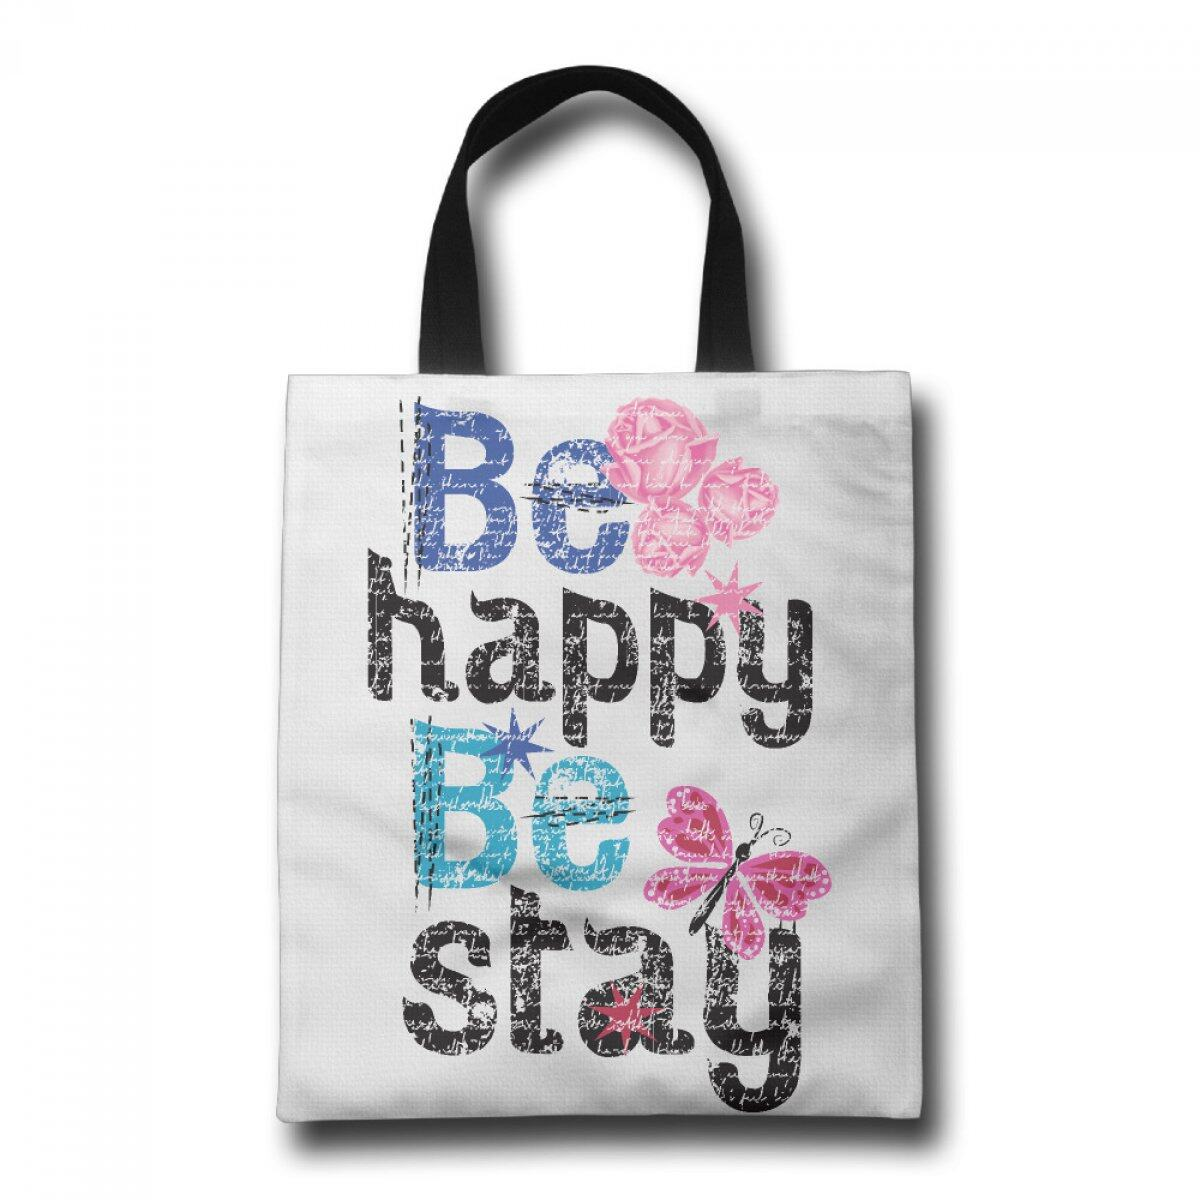 PhoRock Women Tote Bag Be Happy Printed Canvas Beach Tote GWZM020 0